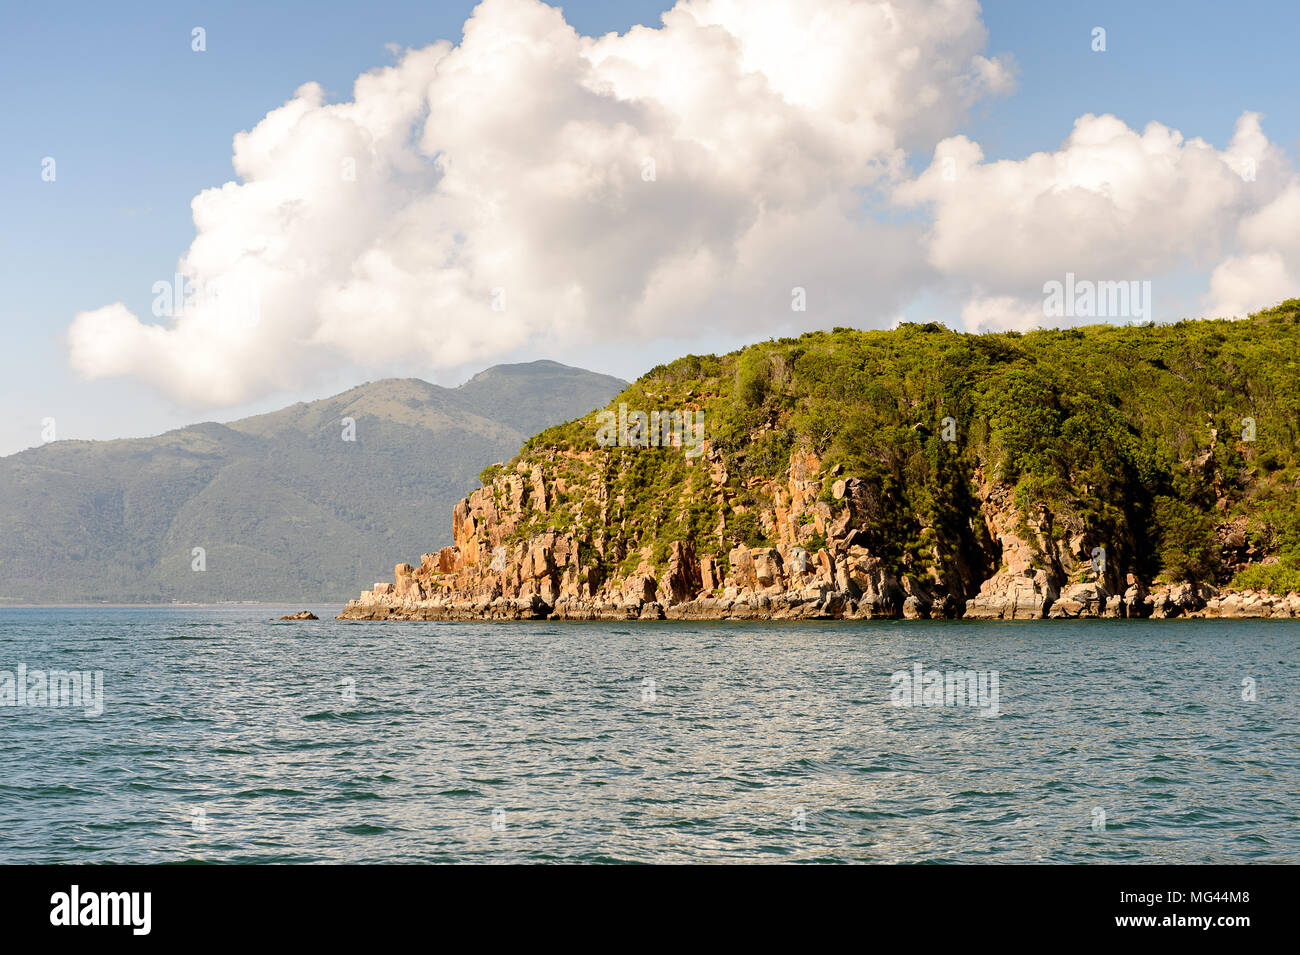 One of the islands near Nha Trang in the South China Sea in Vietnam - Stock Image